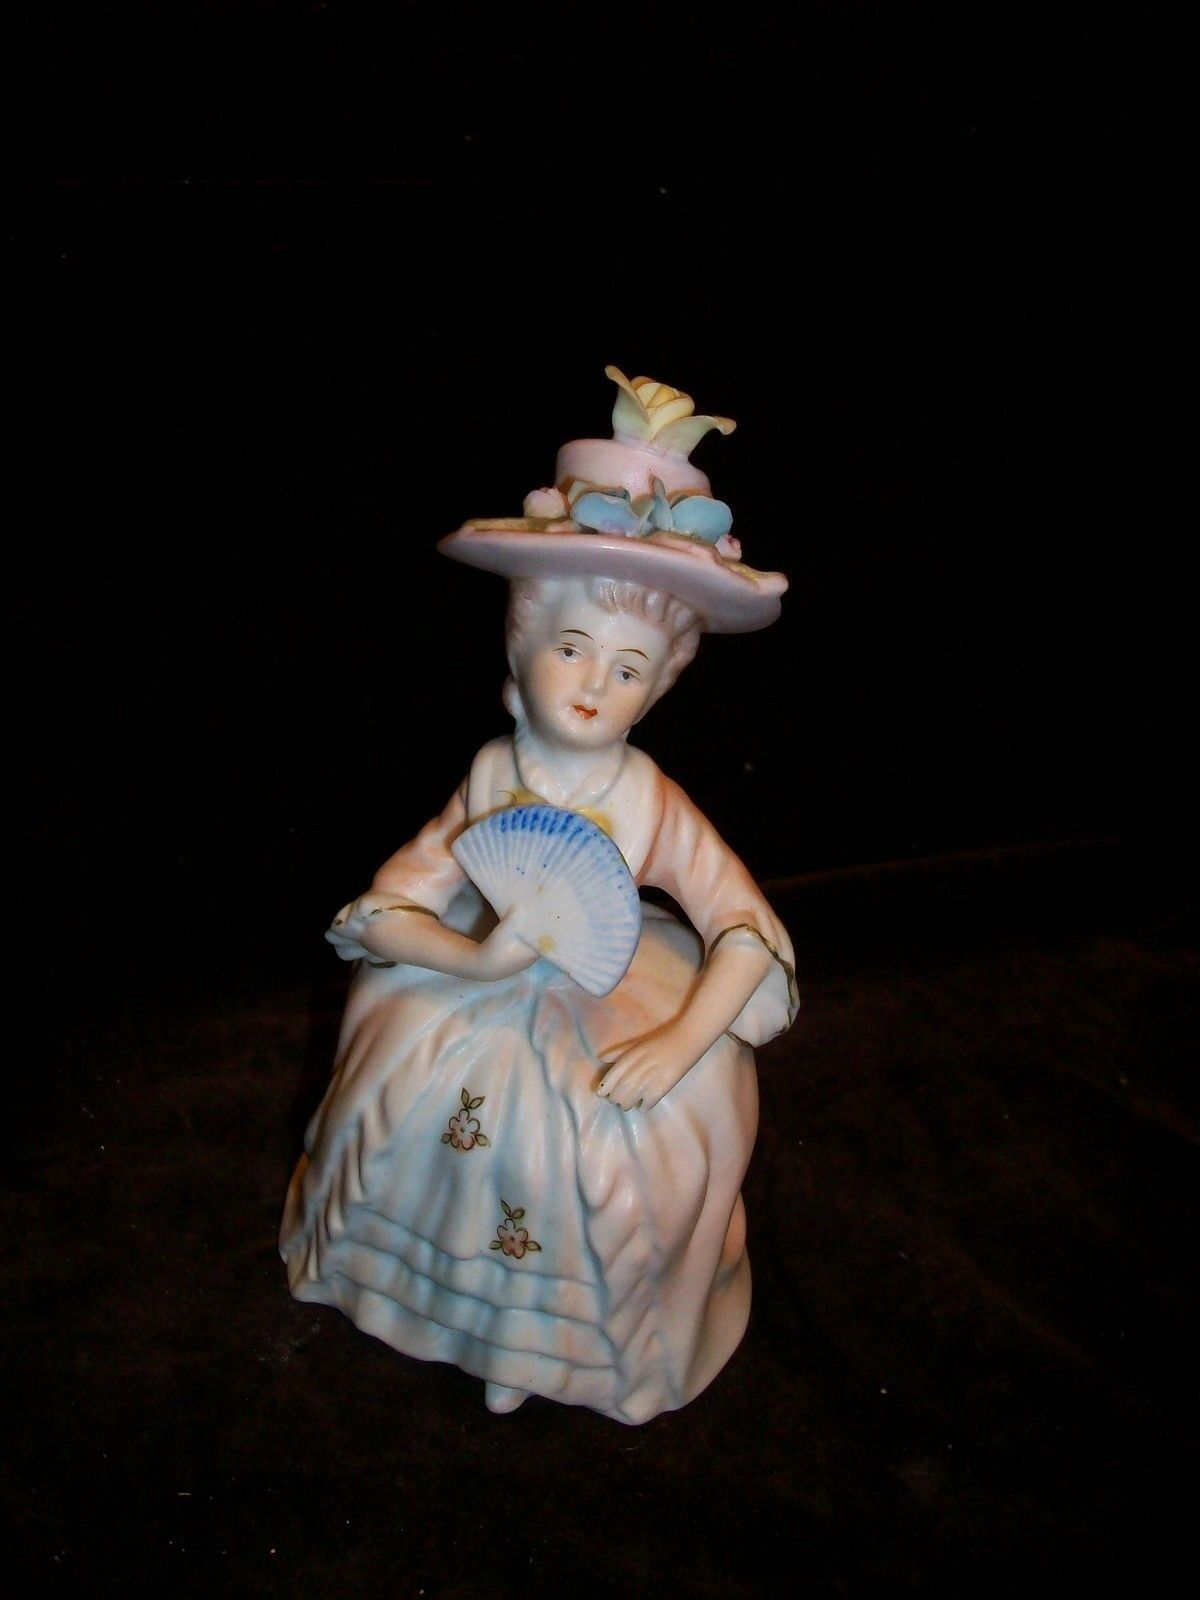 VINTAGE PORCELAIN FRENCH PROVENCIAL LADY FAN FIGURINE PINK DRESS FLOWERS HAT